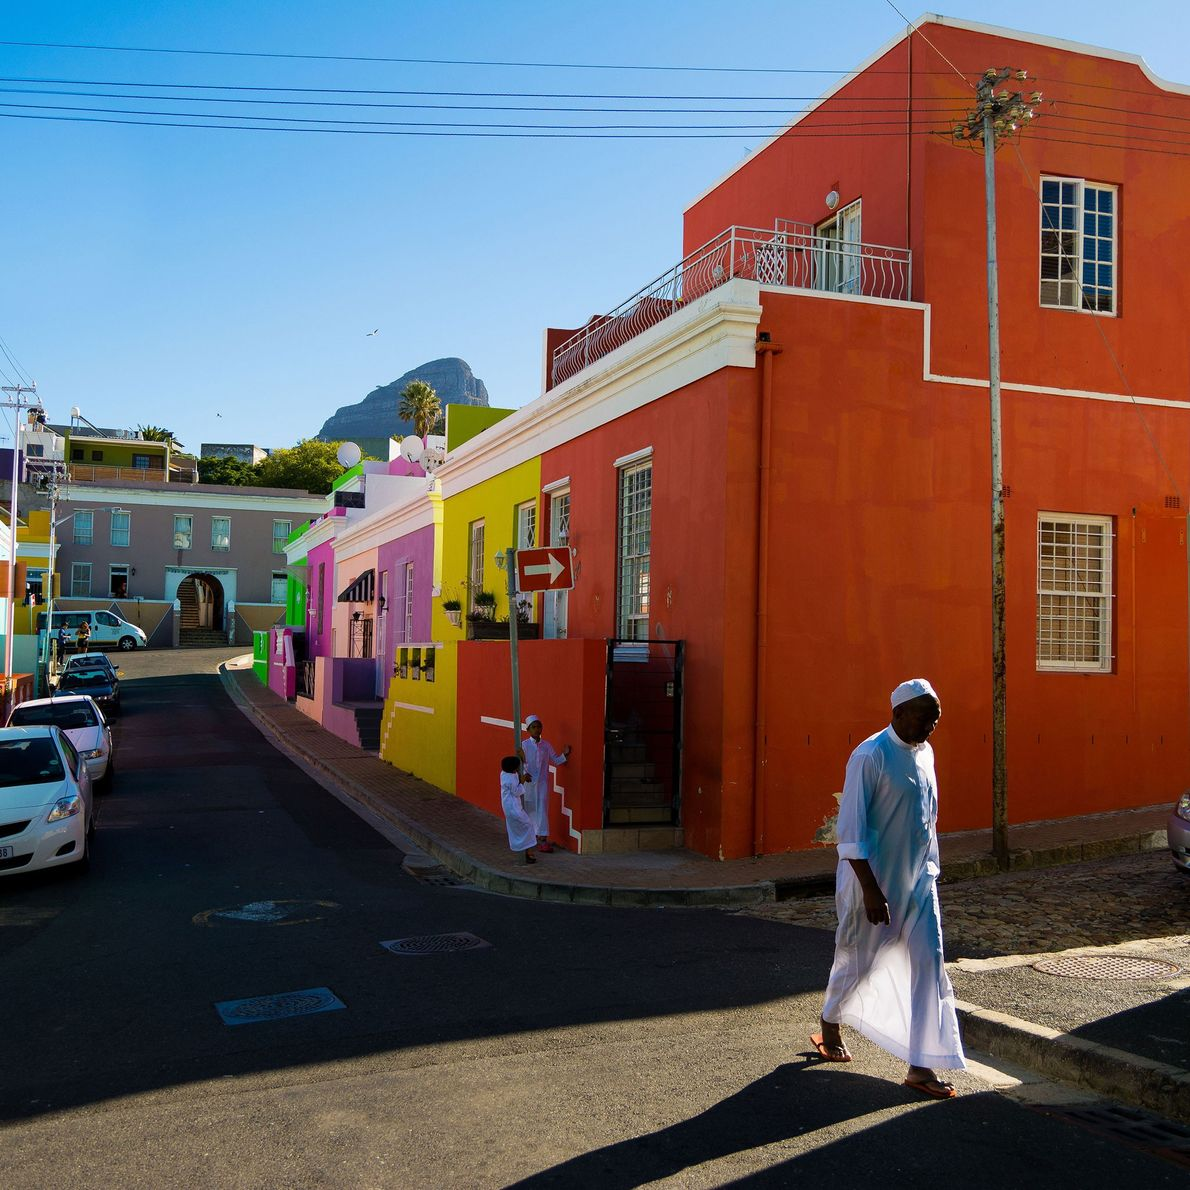 Cape Town, South Africa  BoKaap's colorful buildings are instantly recognisable symbols of Cape Town. Michael recommends visiting ...